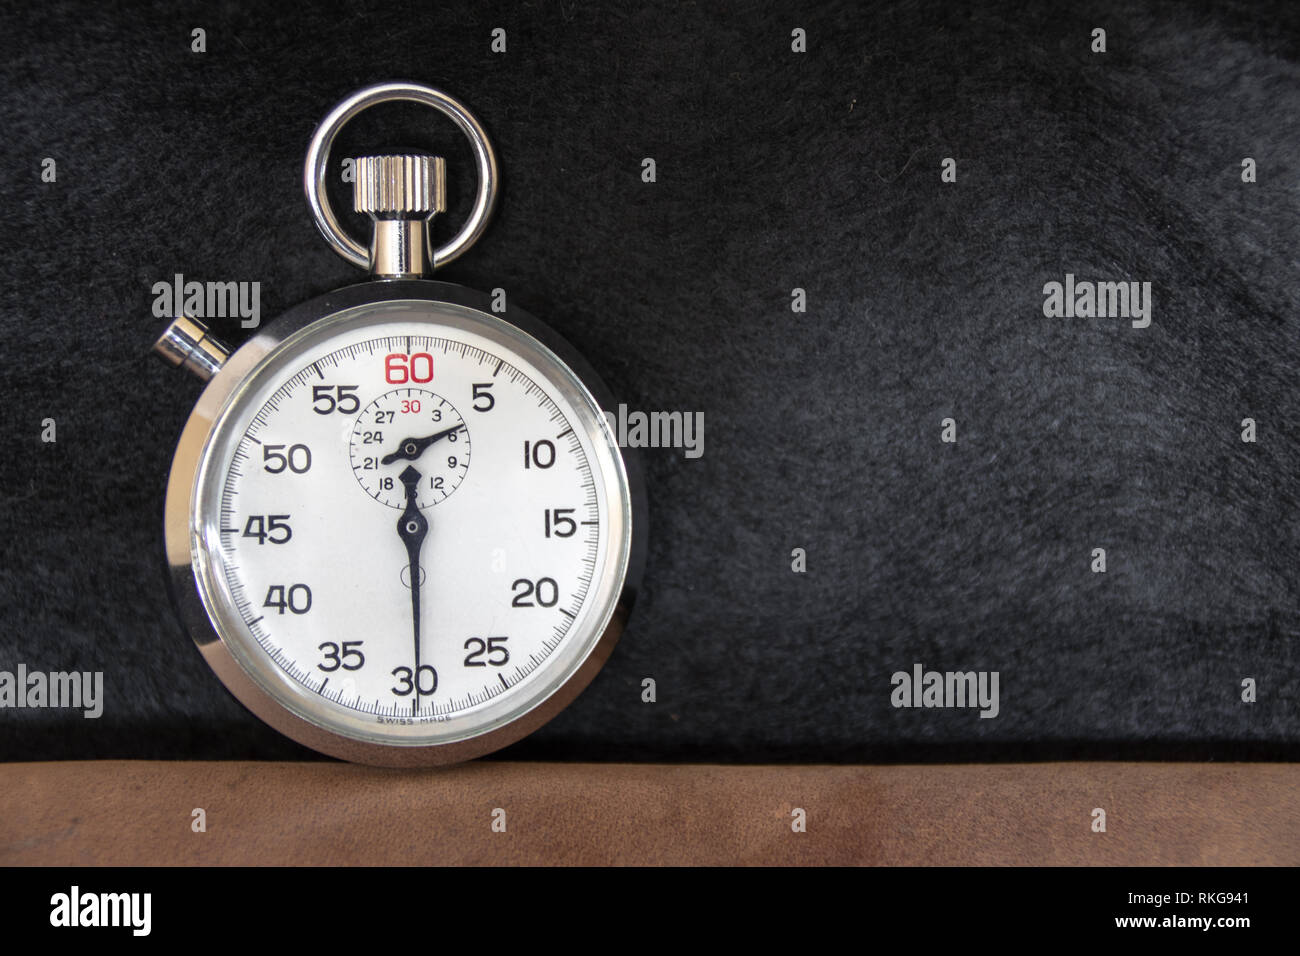 c7919360d662 Stopwatch Precision Stock Photos   Stopwatch Precision Stock Images ...